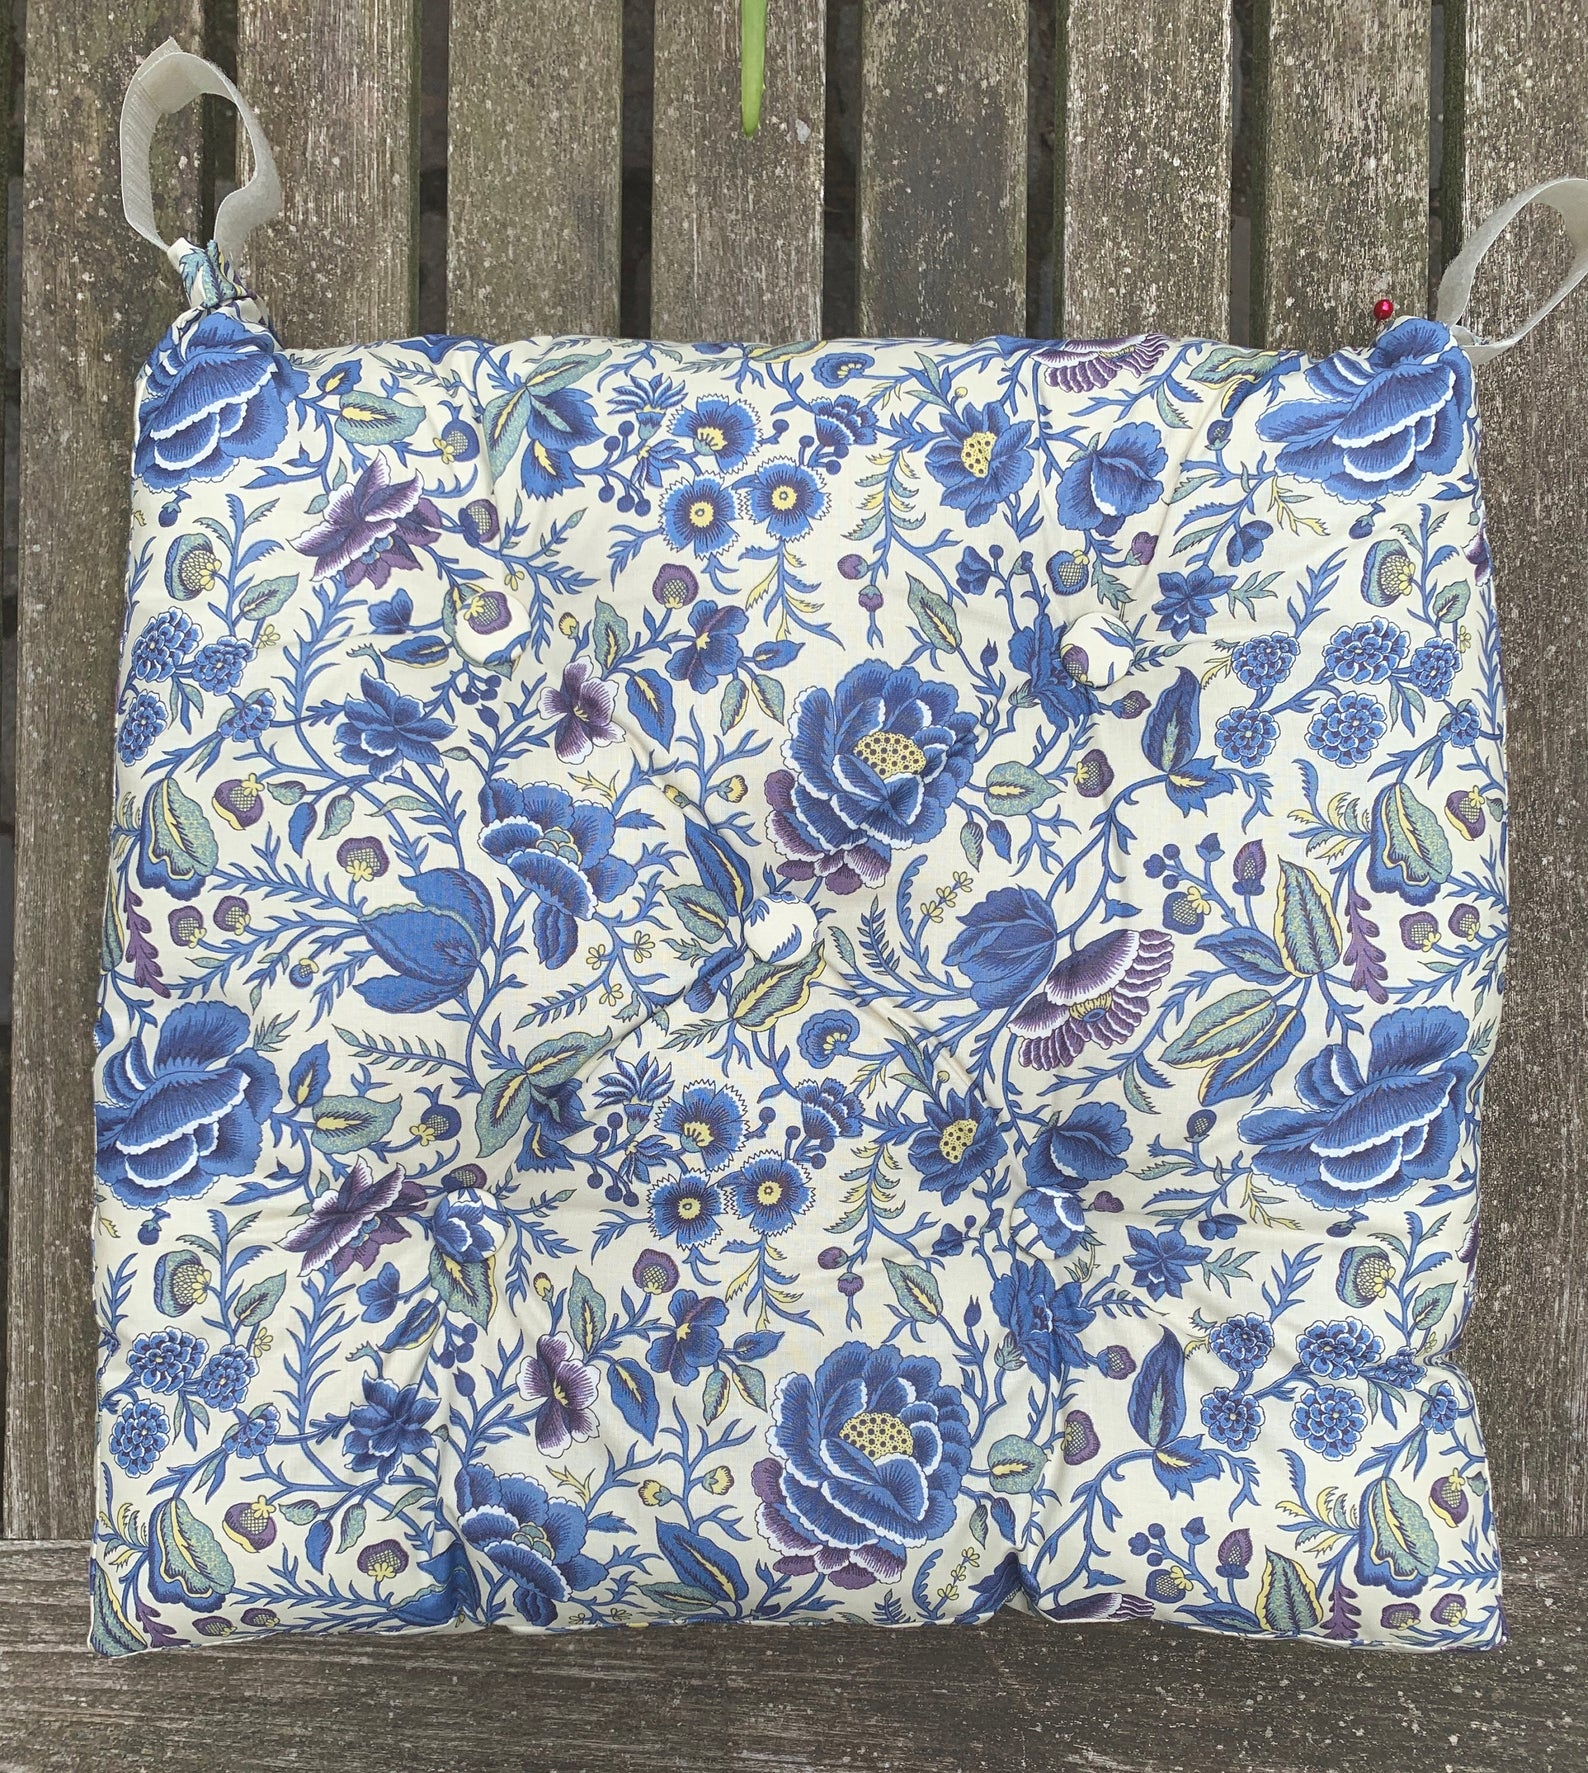 Blue Floral Chair Pad Tufted Cushion Seat Padded Buttoned Etsy Tufted Cushion Chair Pads Floral Chair